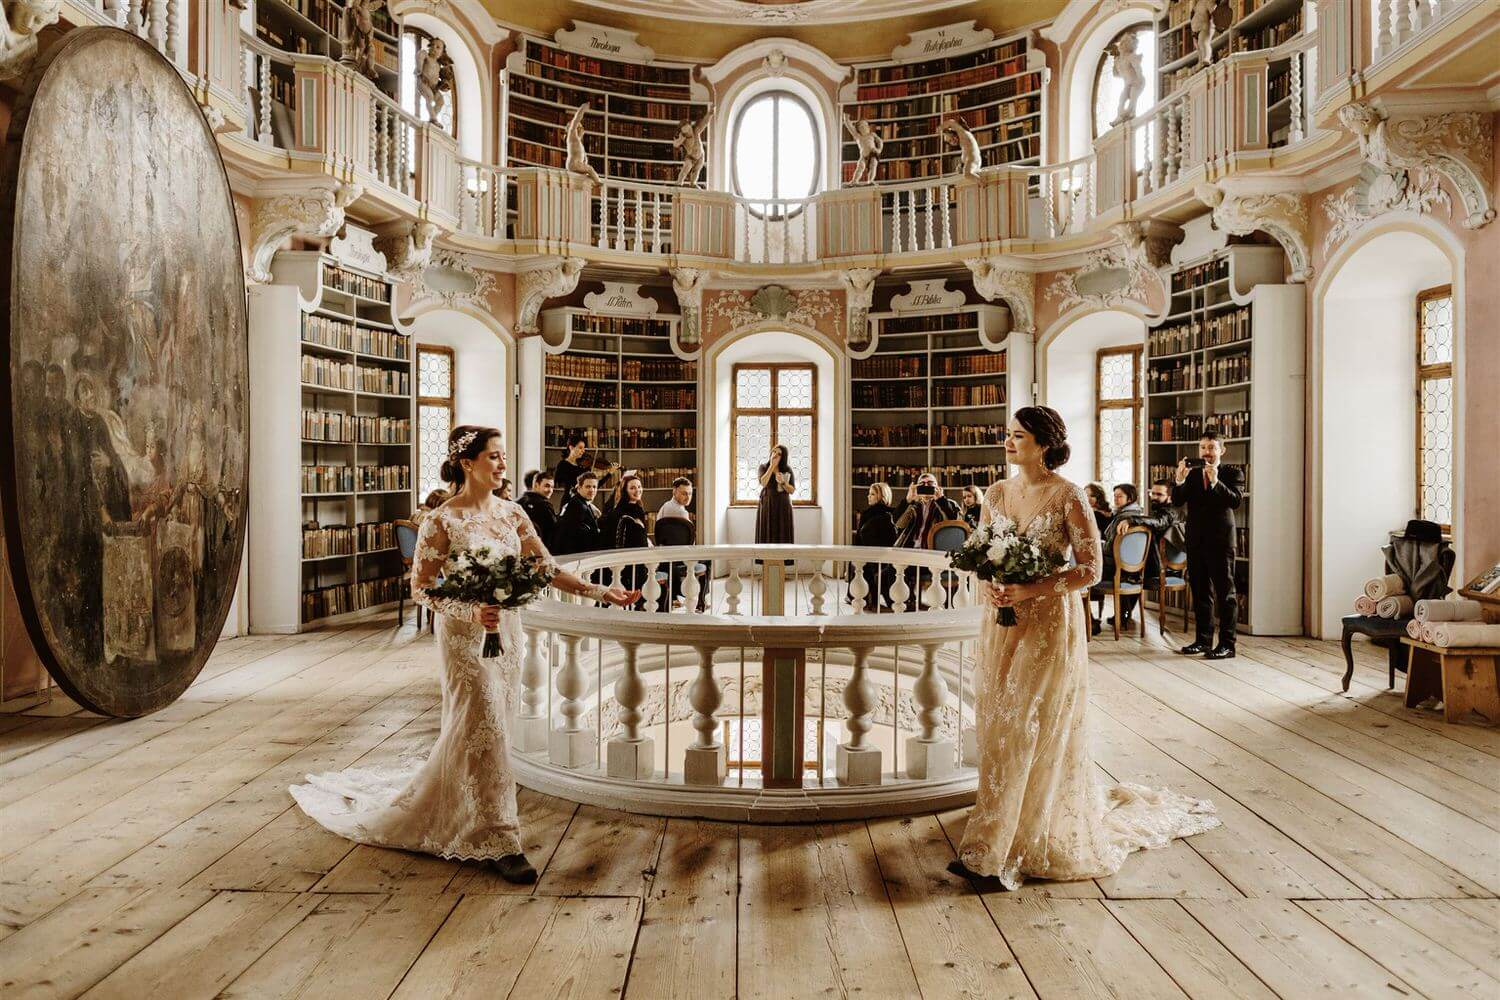 Two brides walk towards each other after their wedding ceremony in a library